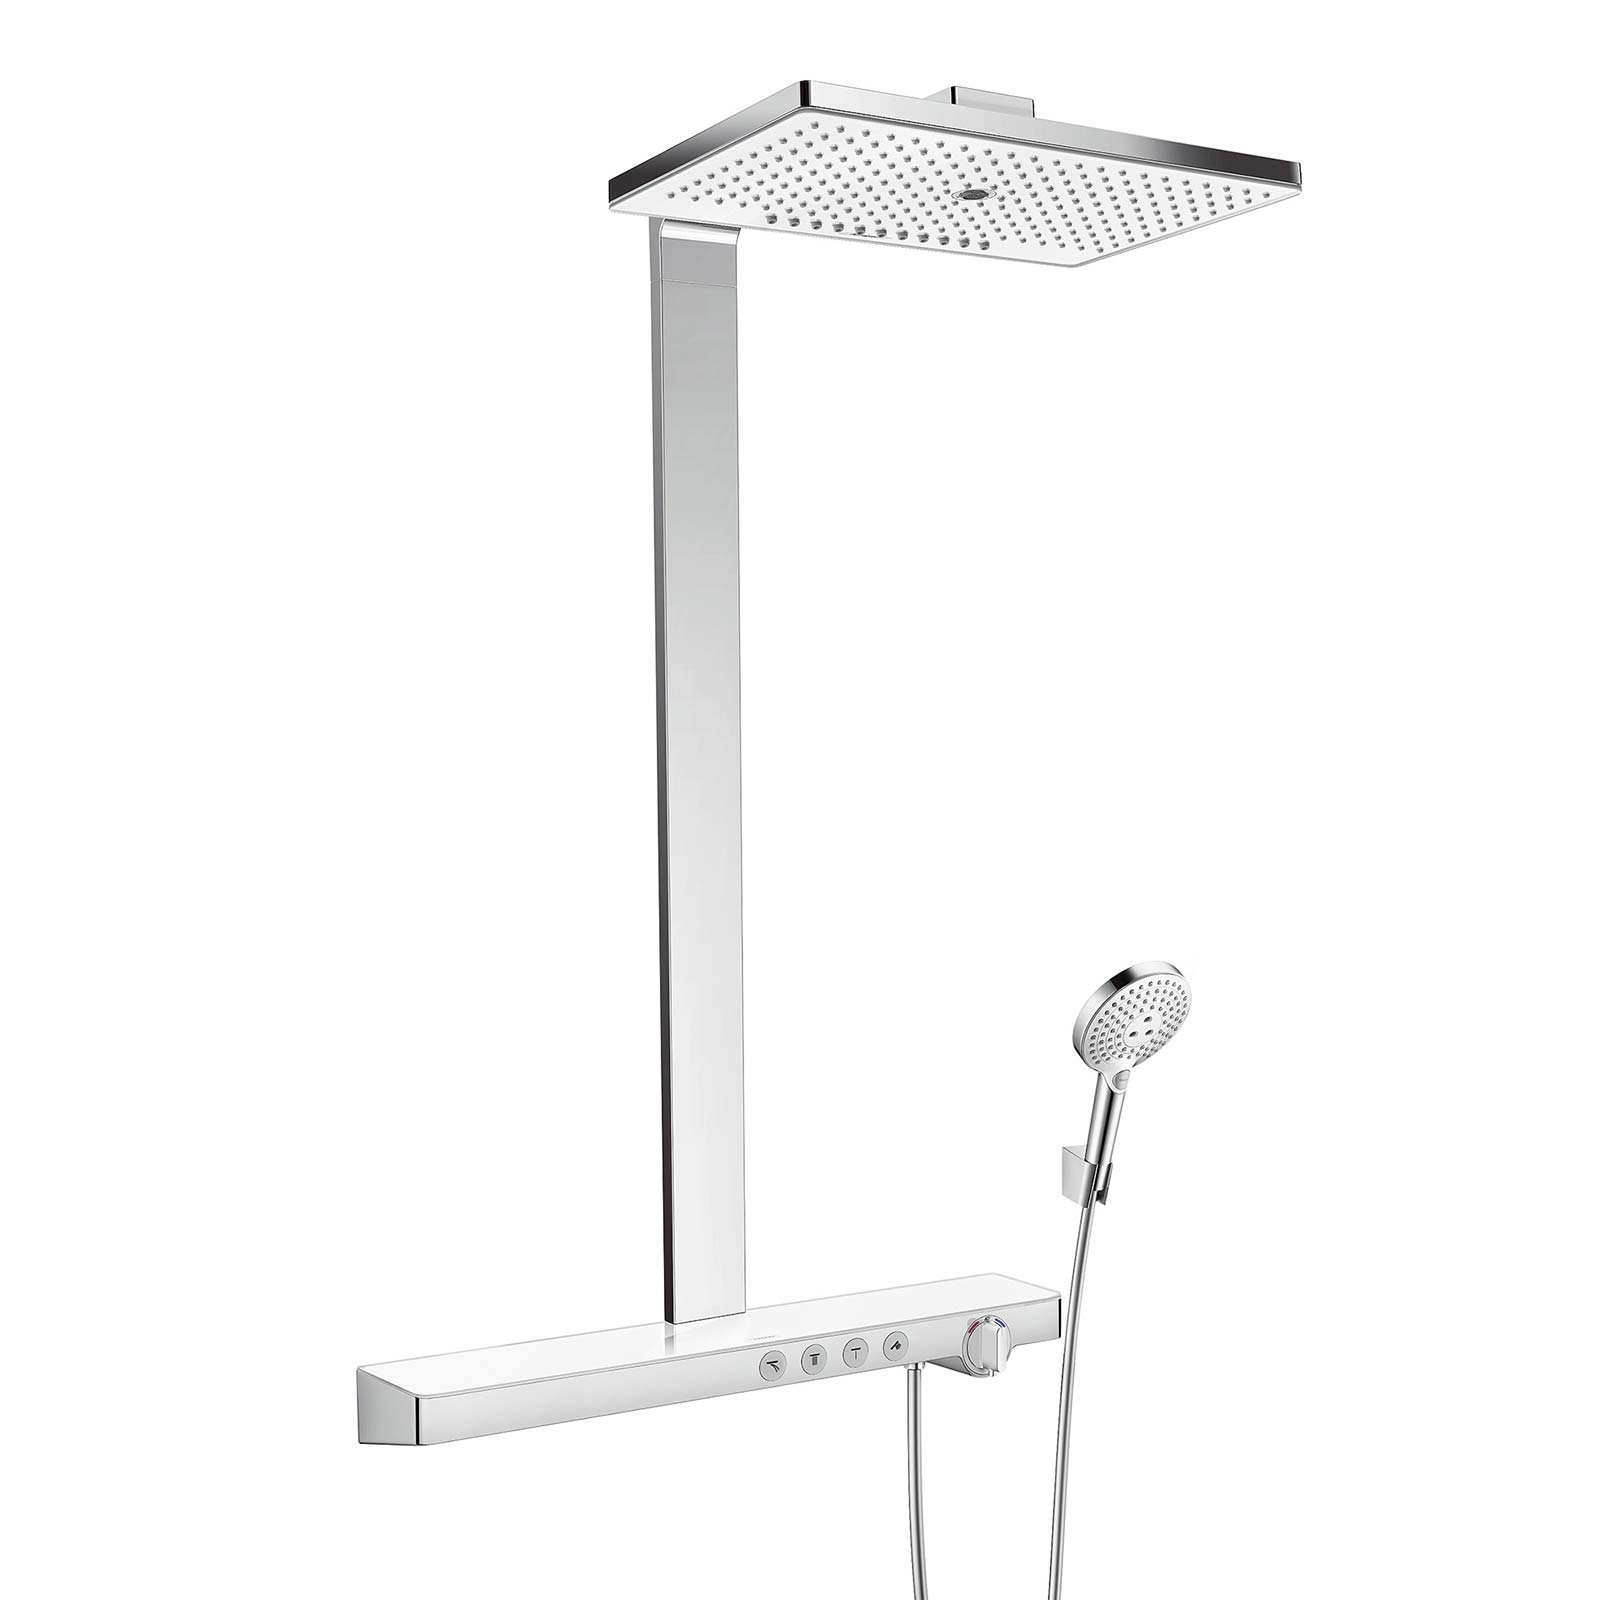 colonne de douche showerpipe rainmaker select 460 3jet hansgrohe schmitt ney. Black Bedroom Furniture Sets. Home Design Ideas